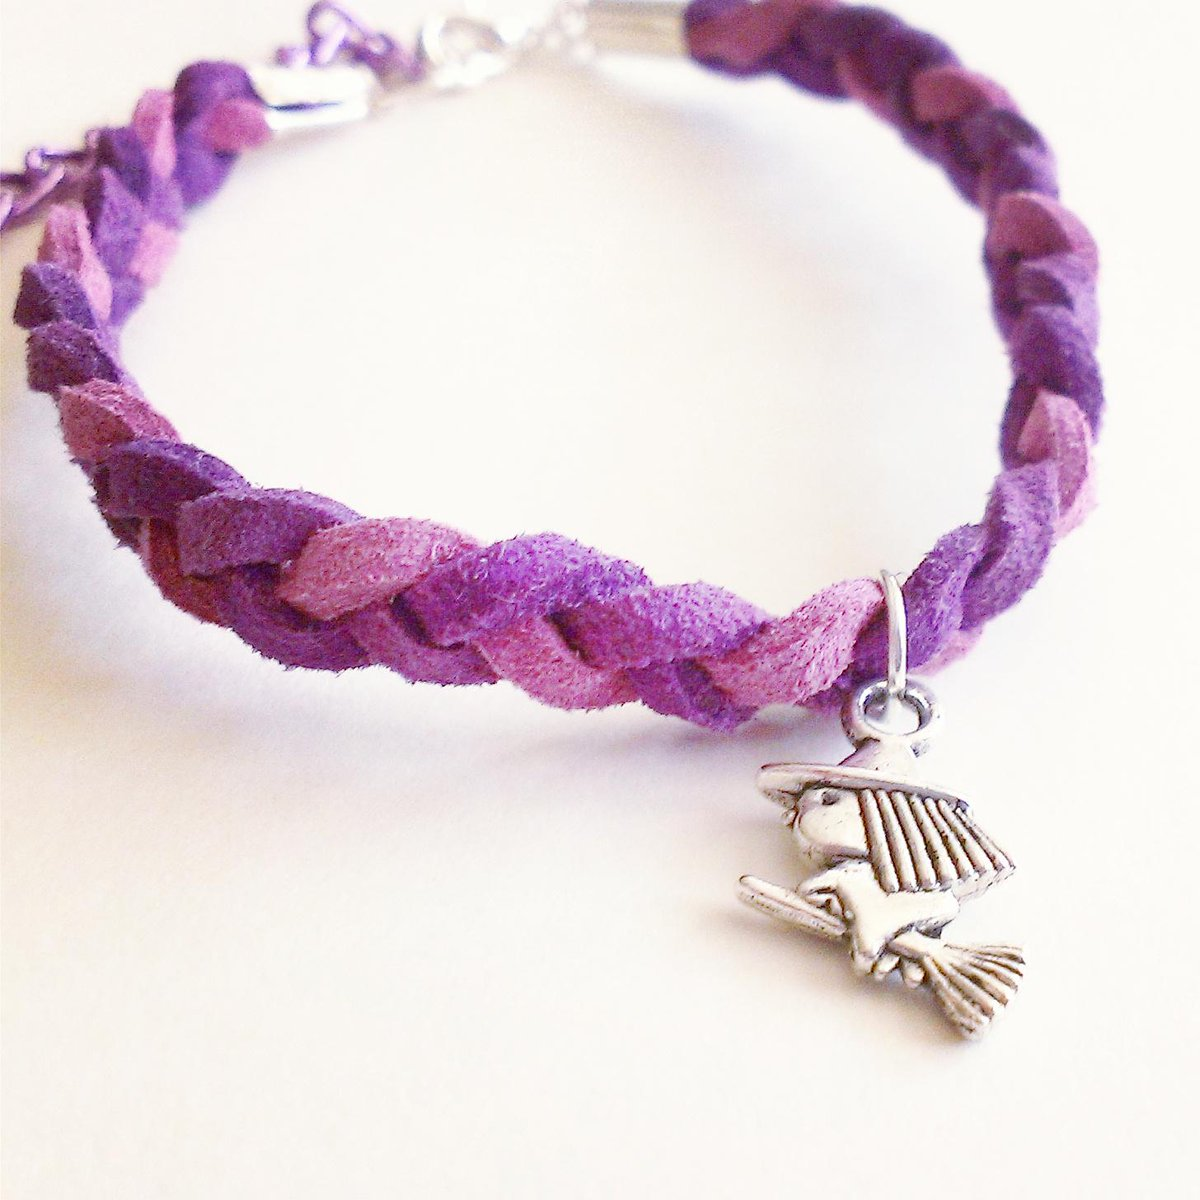 Embrace your inner Witch, Plaited Suede Bracelet with Flying Witch Charm #LadiesCoffeeHour #Halloween #Promotingwomen http://t.co/Pf7NrMCCsz